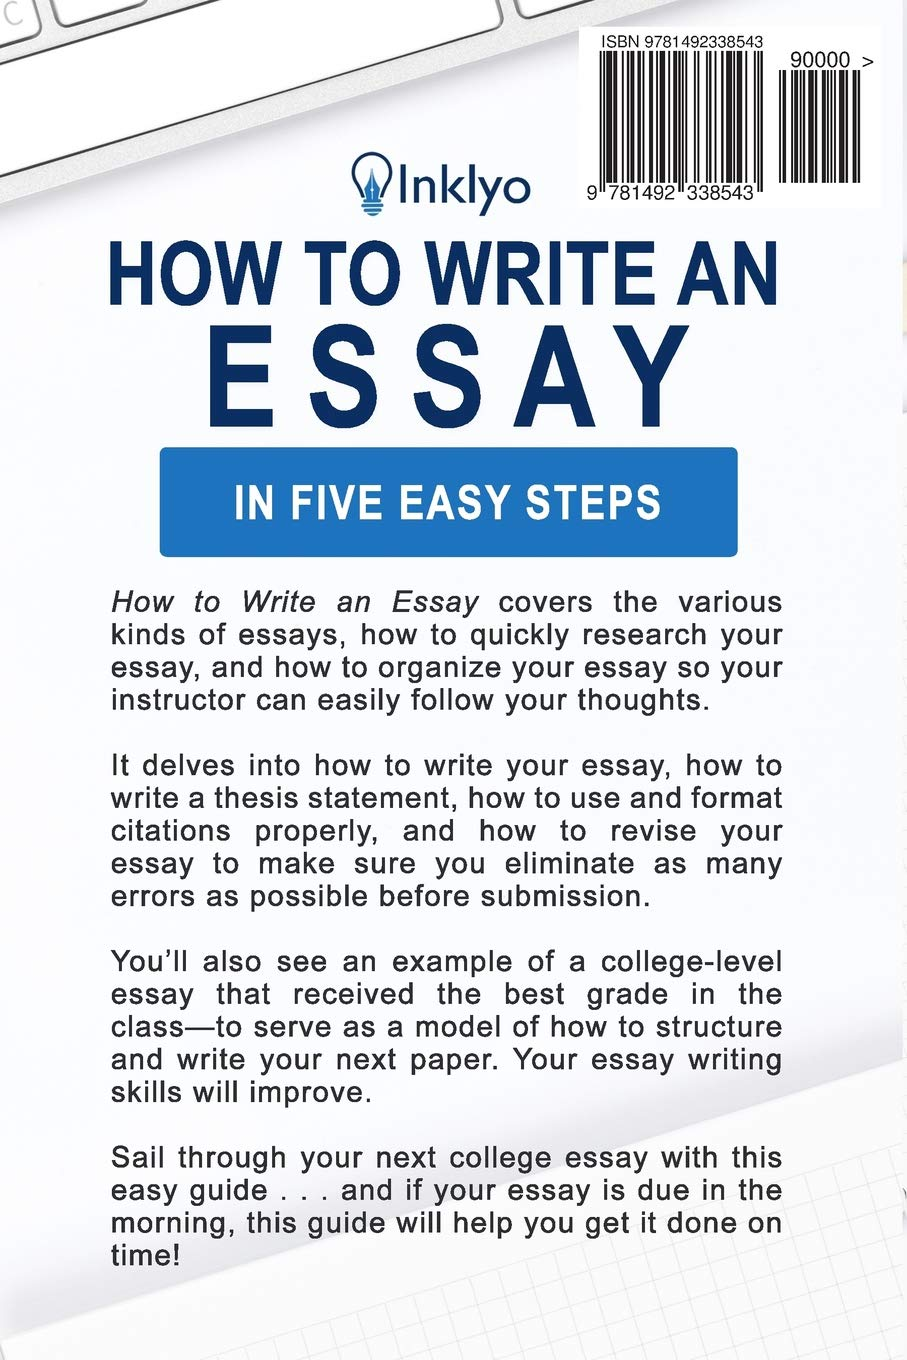 002 How To Write An Essay Example Shocking About Yourself Conclusion Pdf Academic Fast Full